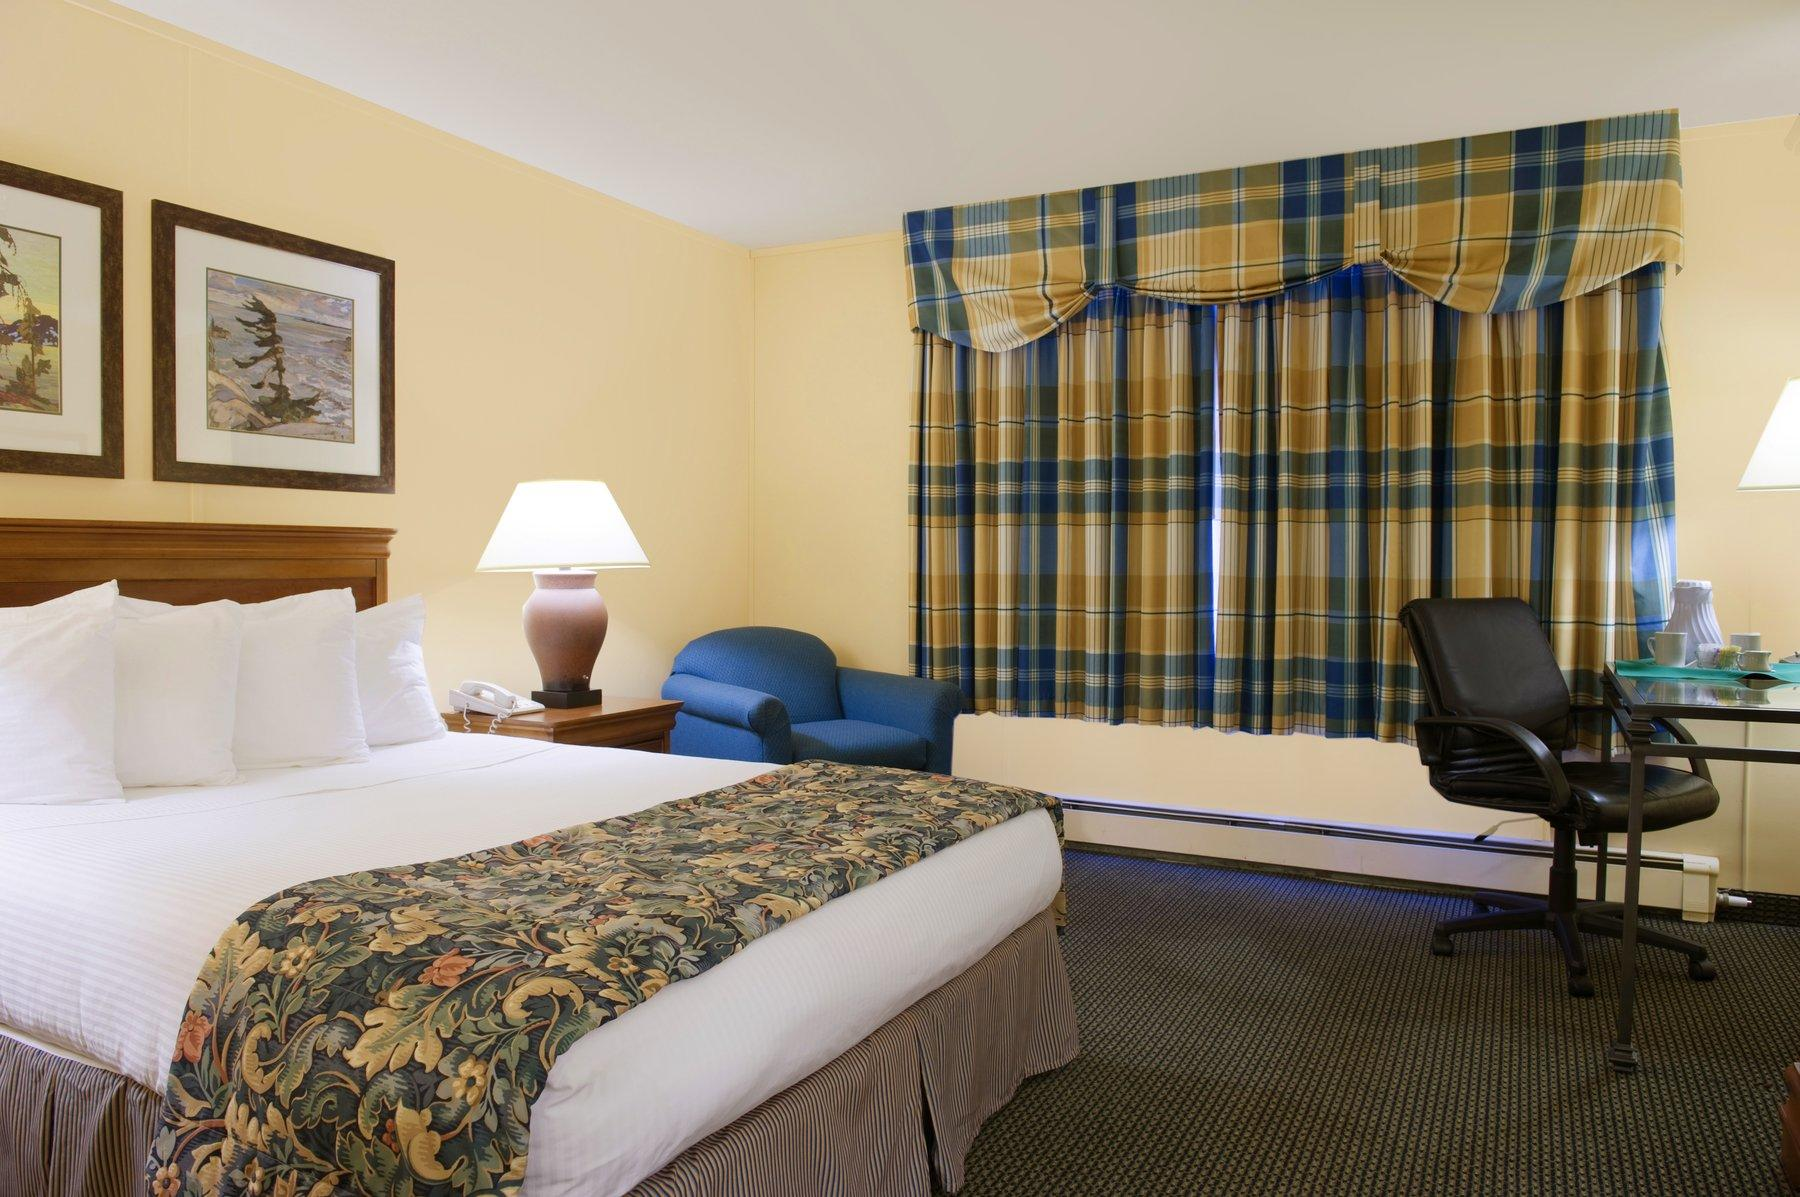 Hotel room with queen bed.